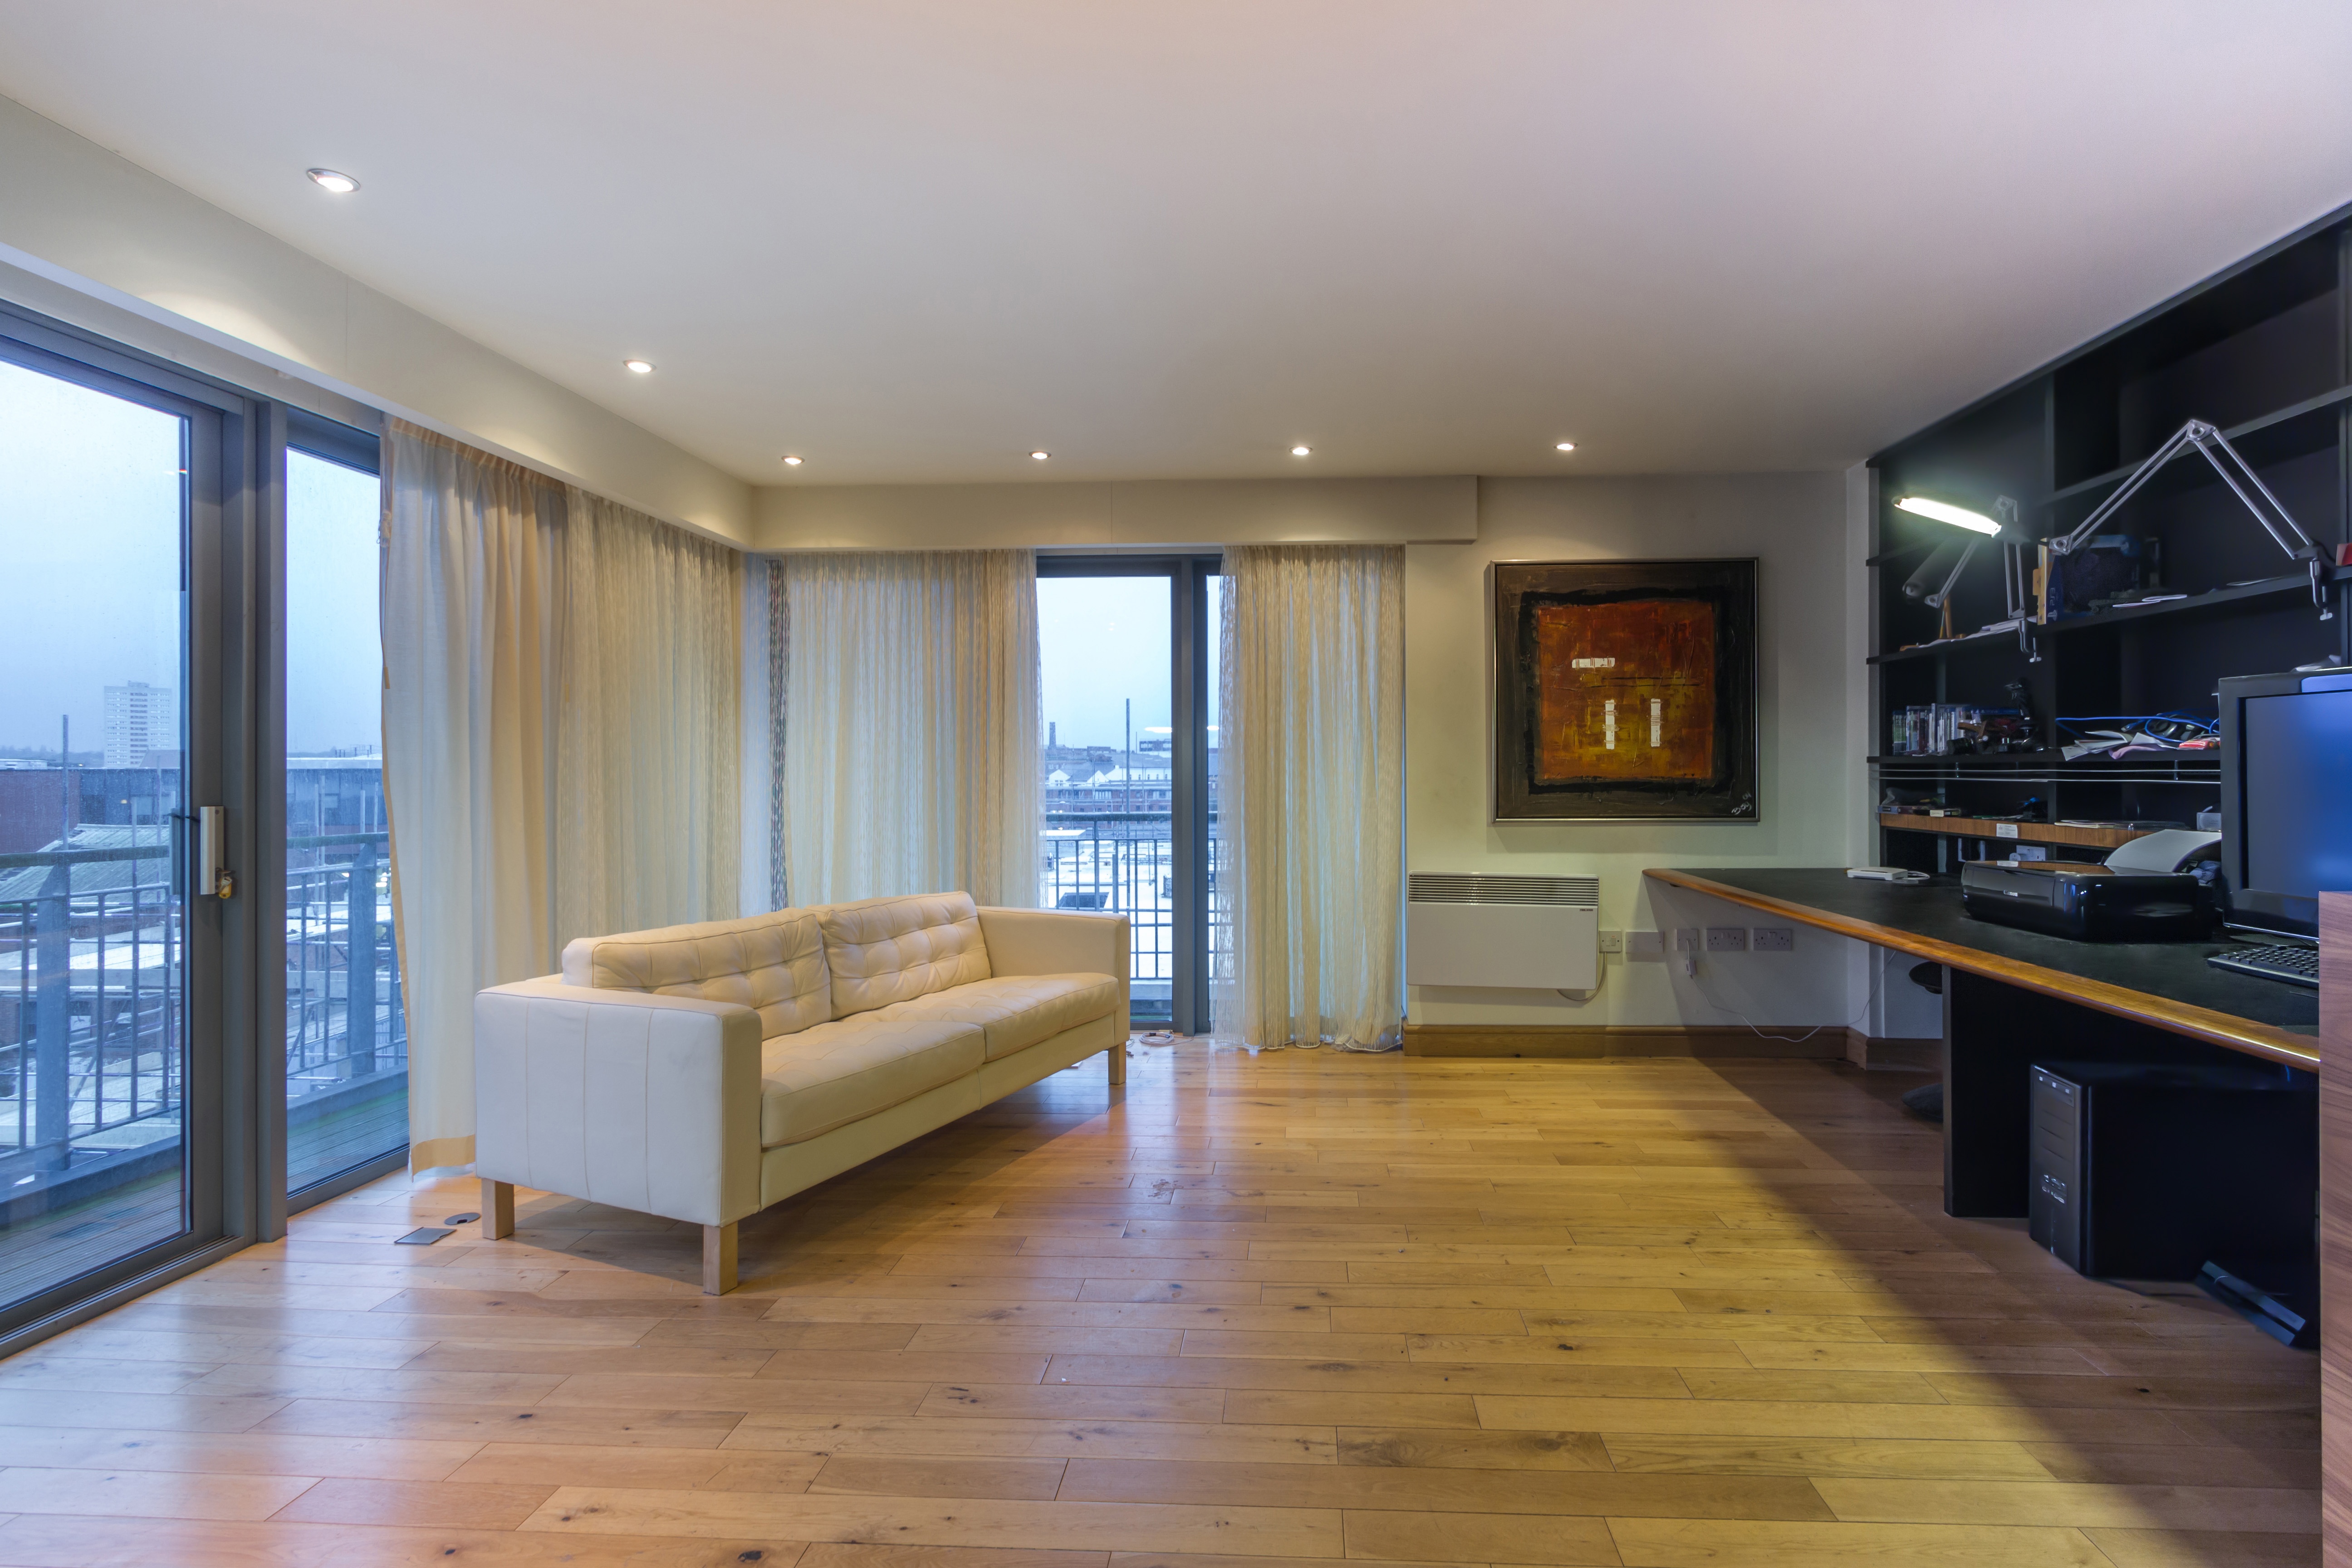 ... Making The Most Of Living In A City Centre Apartment U2013 Leary U0026 Co. Ltd